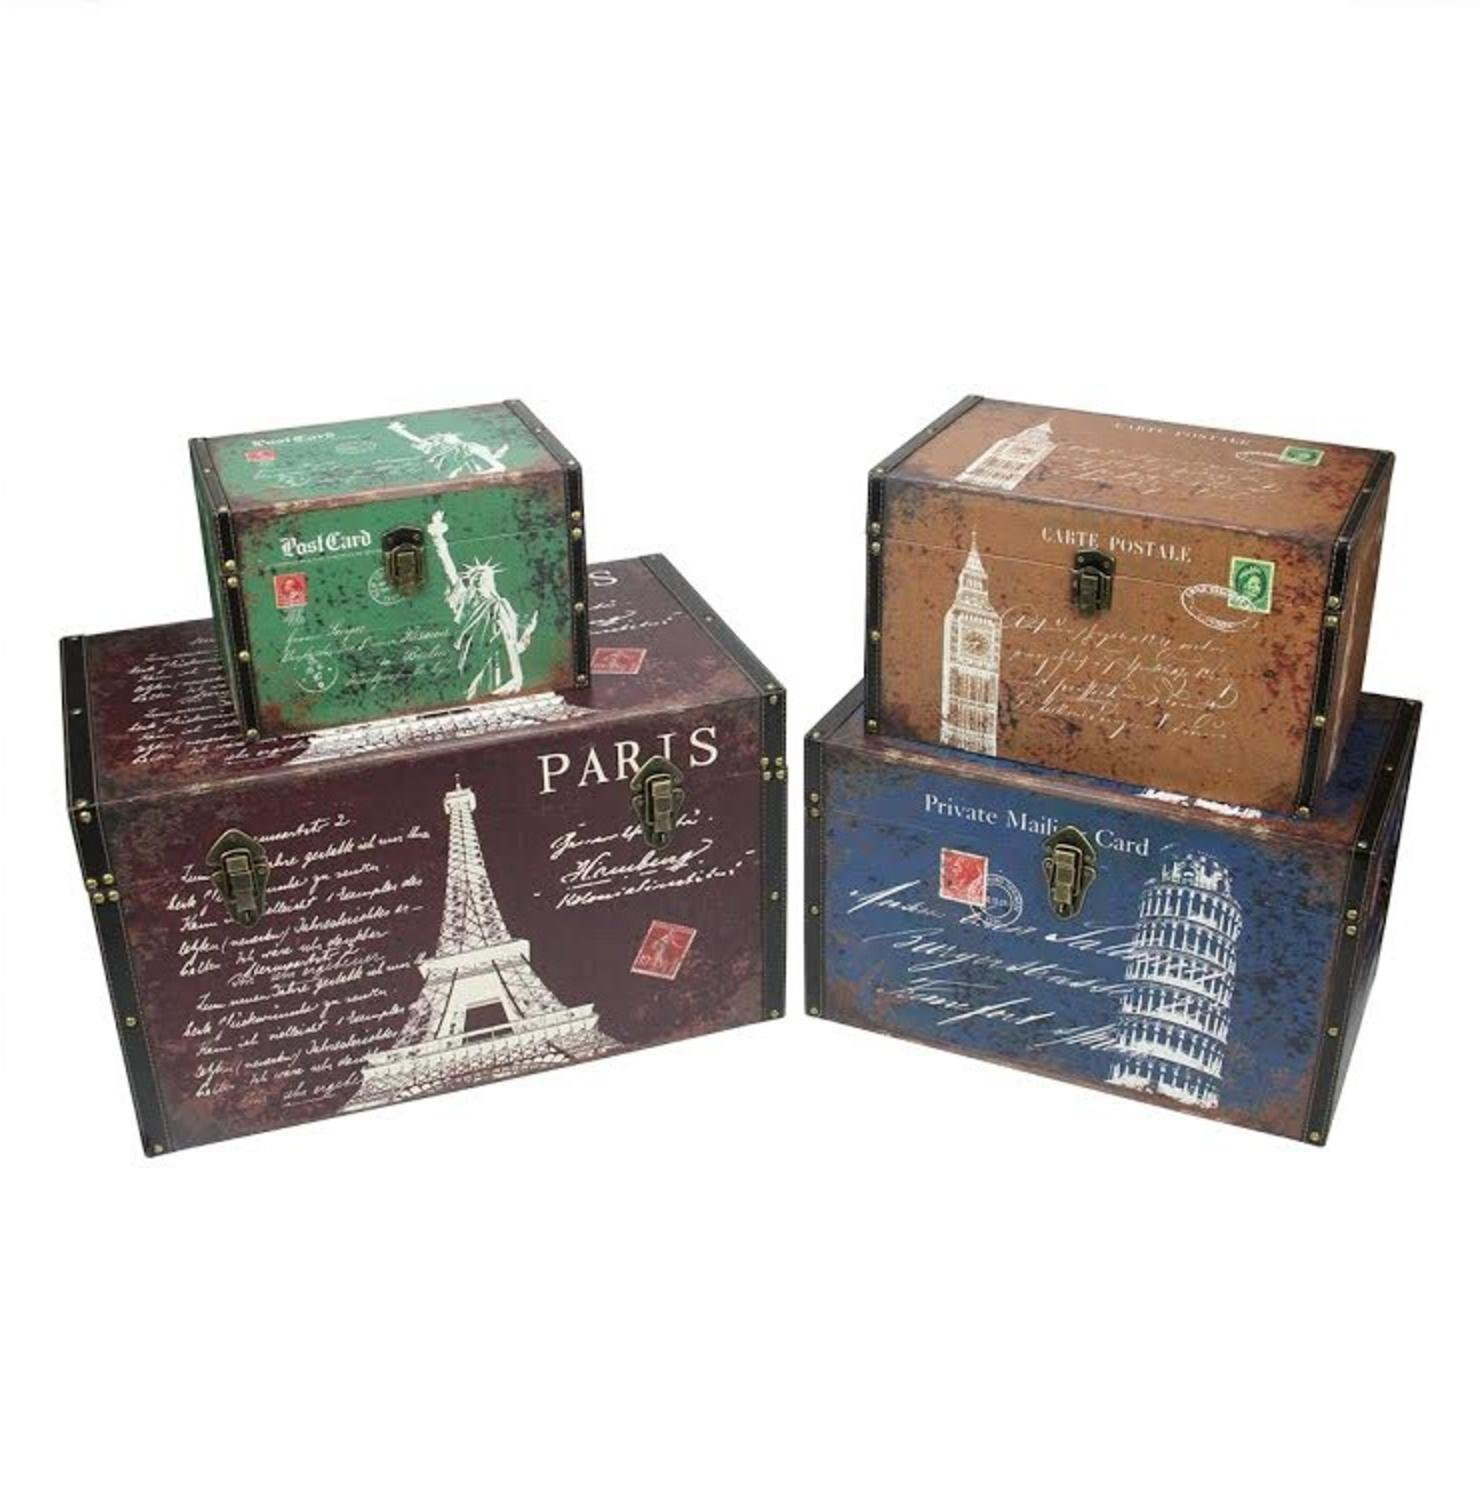 Northlight Set of 4 Vintage-Style Travel Themed Decorative Wooden Storage Boxes, 23.5'', Multicolored